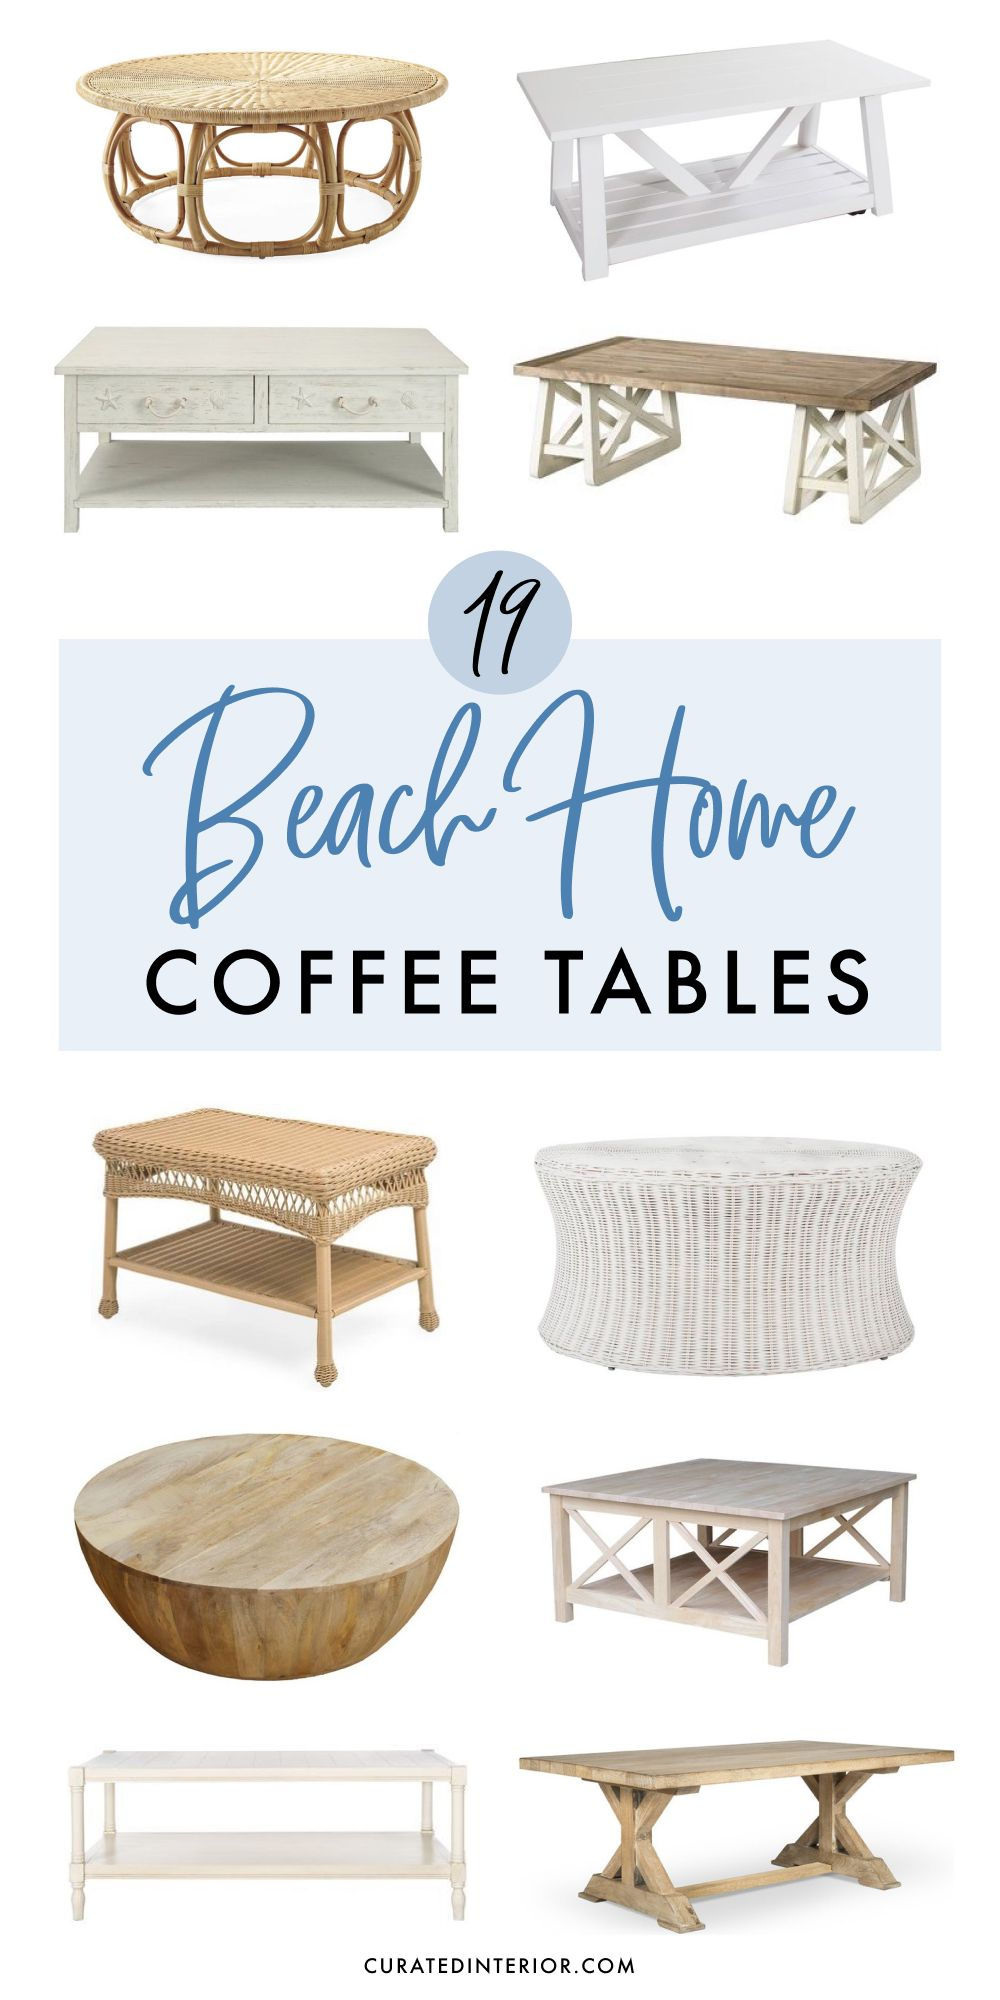 - 19 Coastal Coffee Tables For Your Beach Home